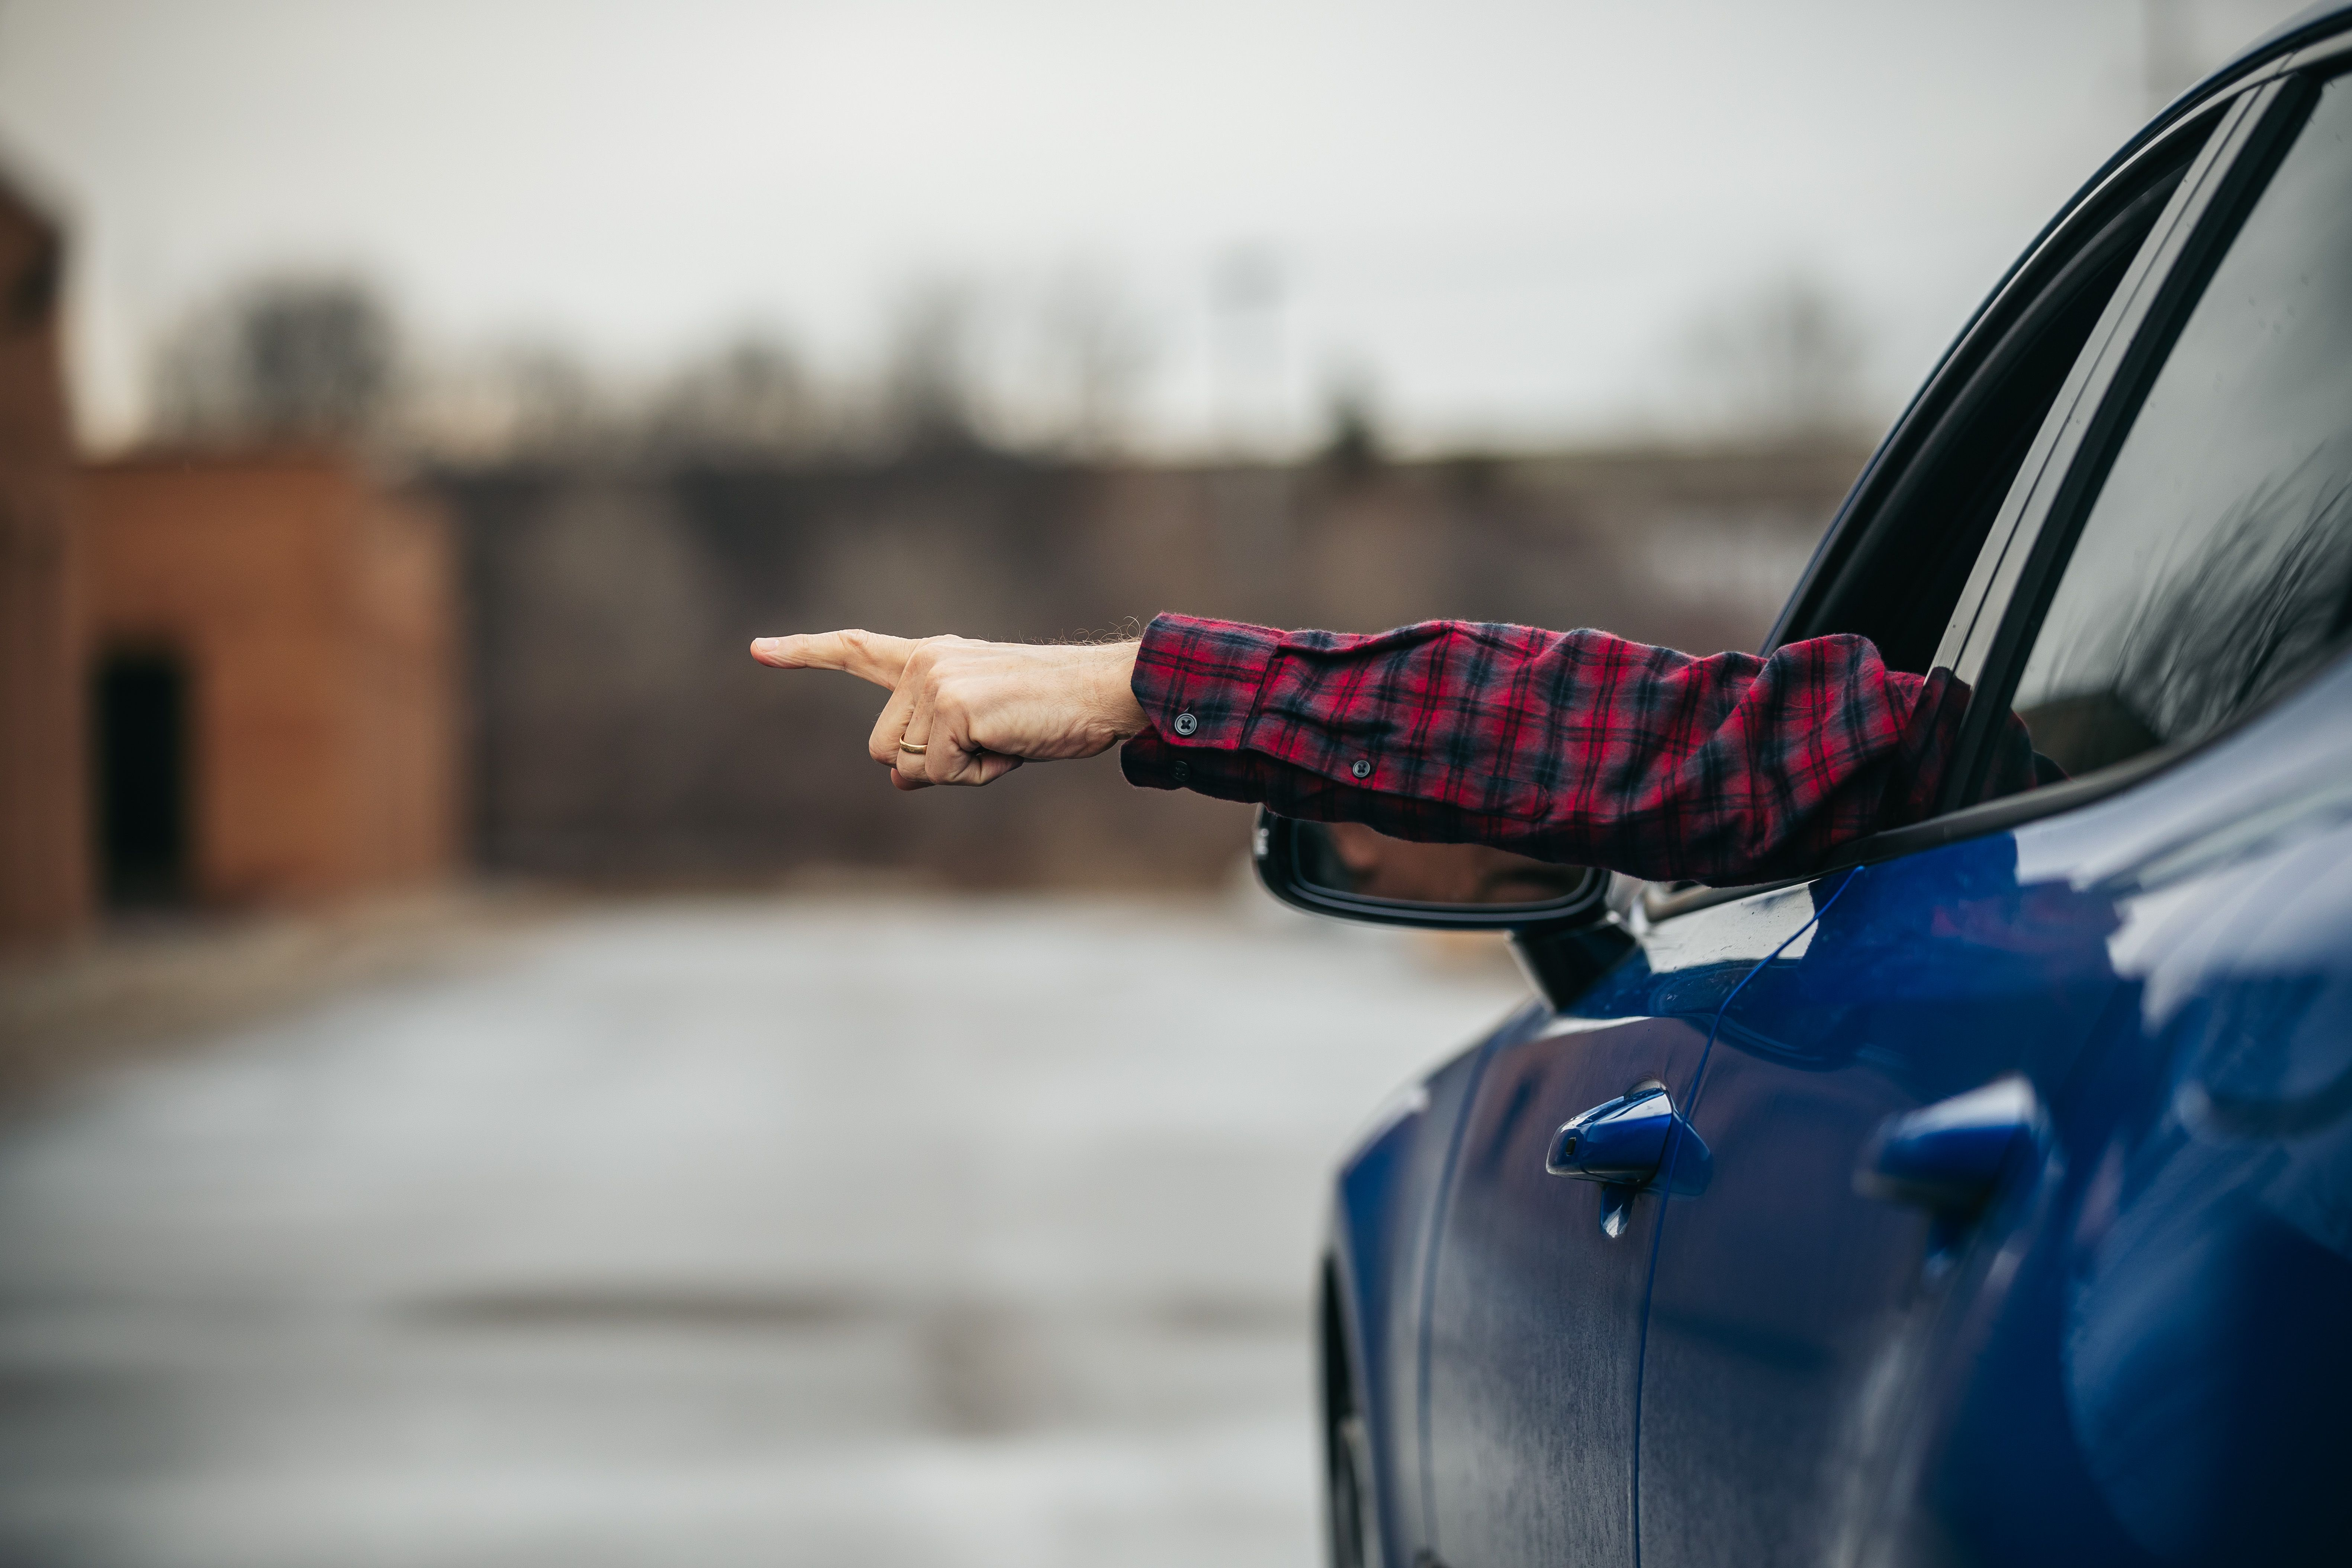 The 3 Basic Driver Hand Signals – When to Use Hand Signals